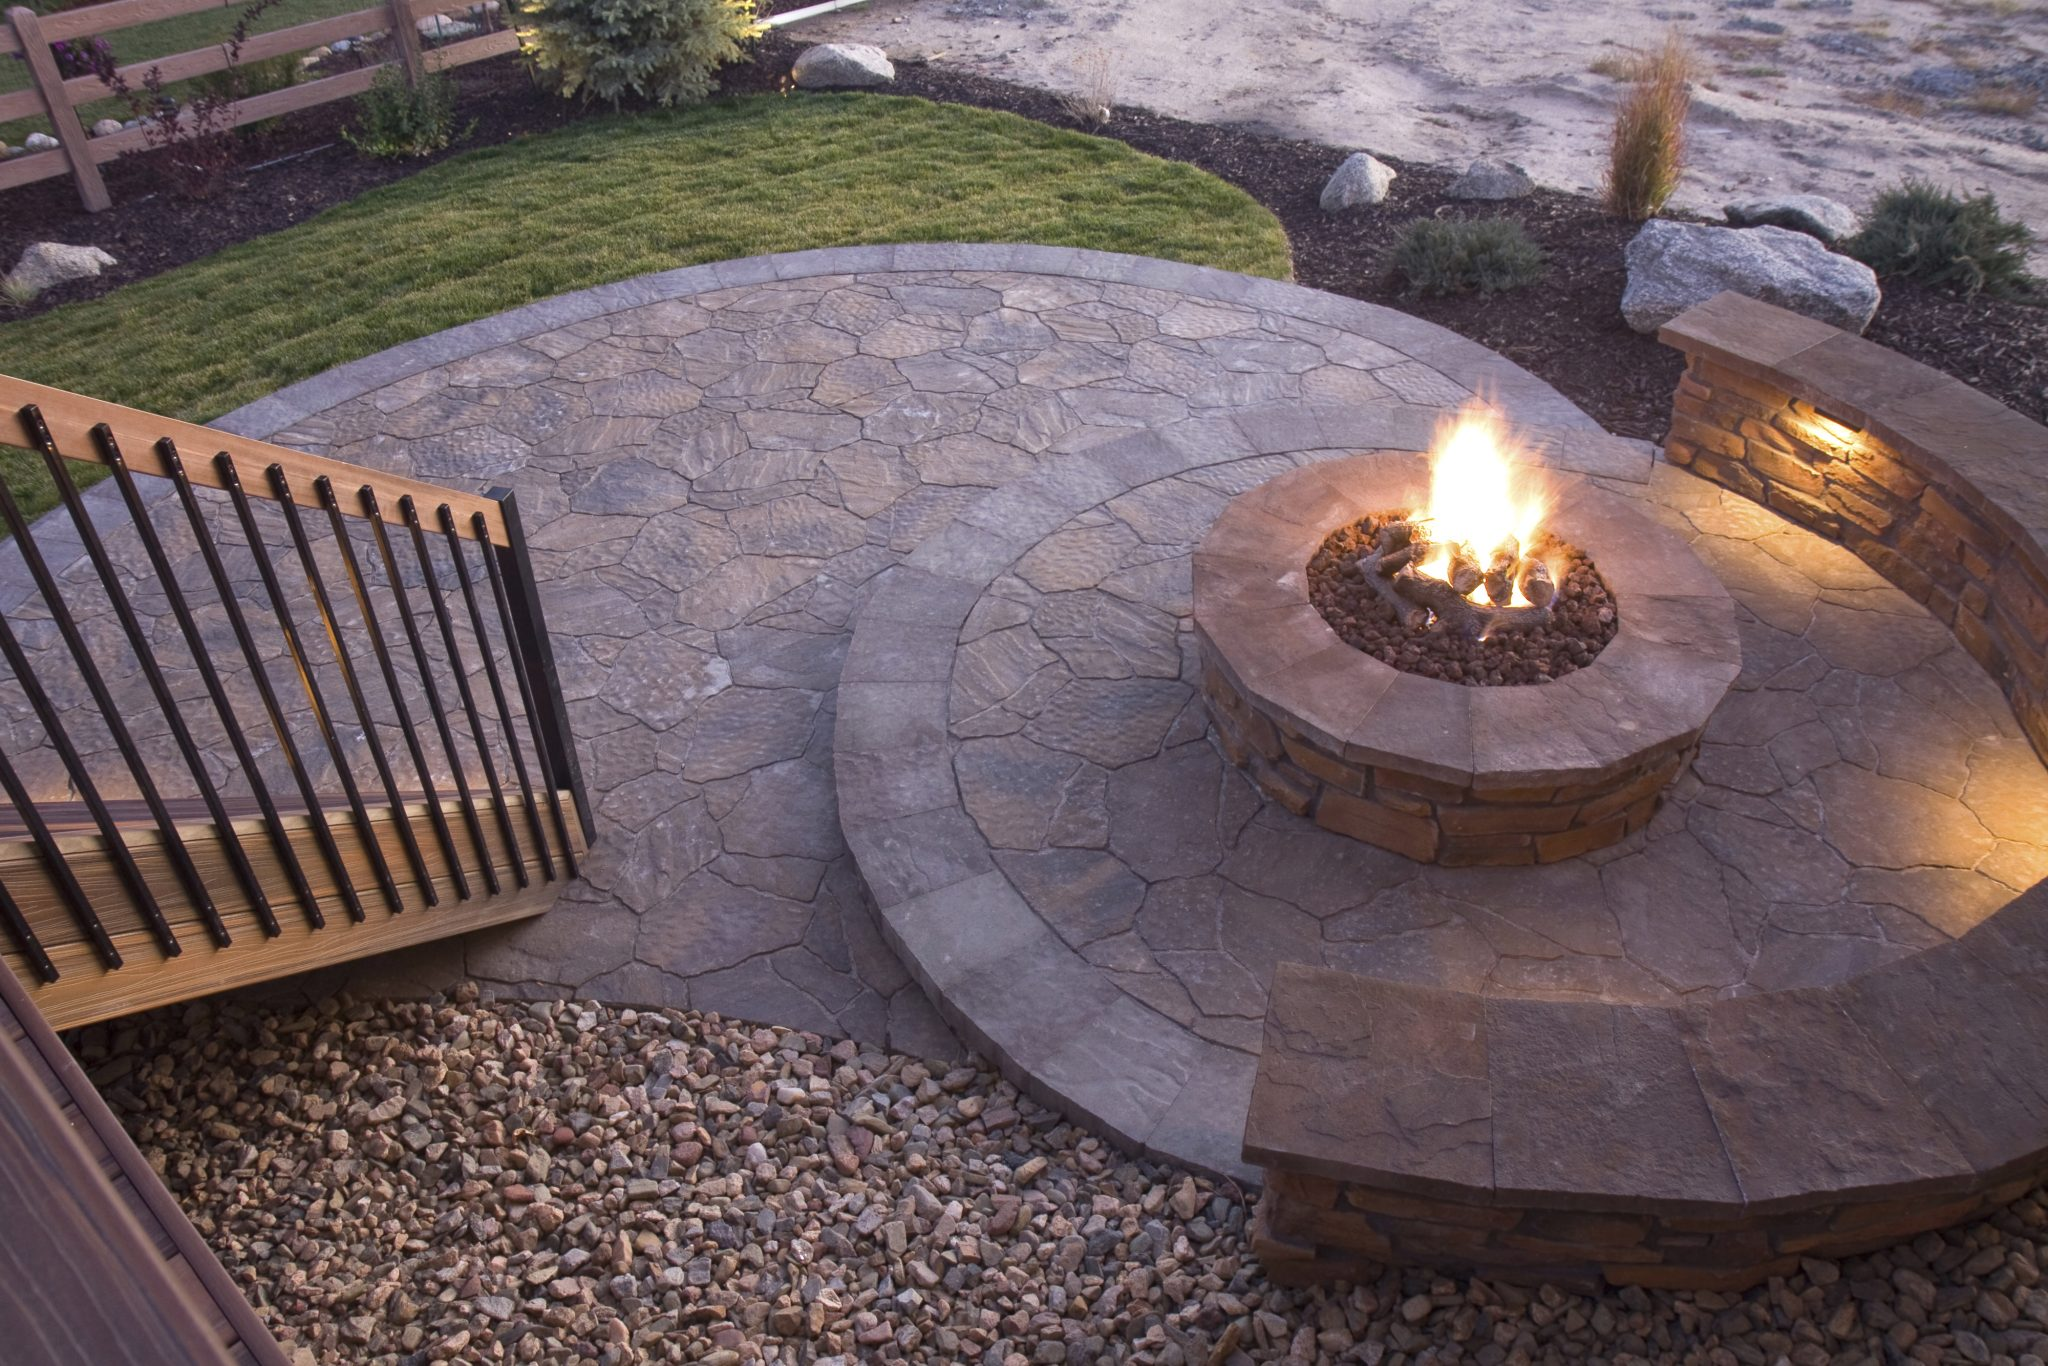 Check out these safety tips for enjoying your outdoor fire pit this summer.